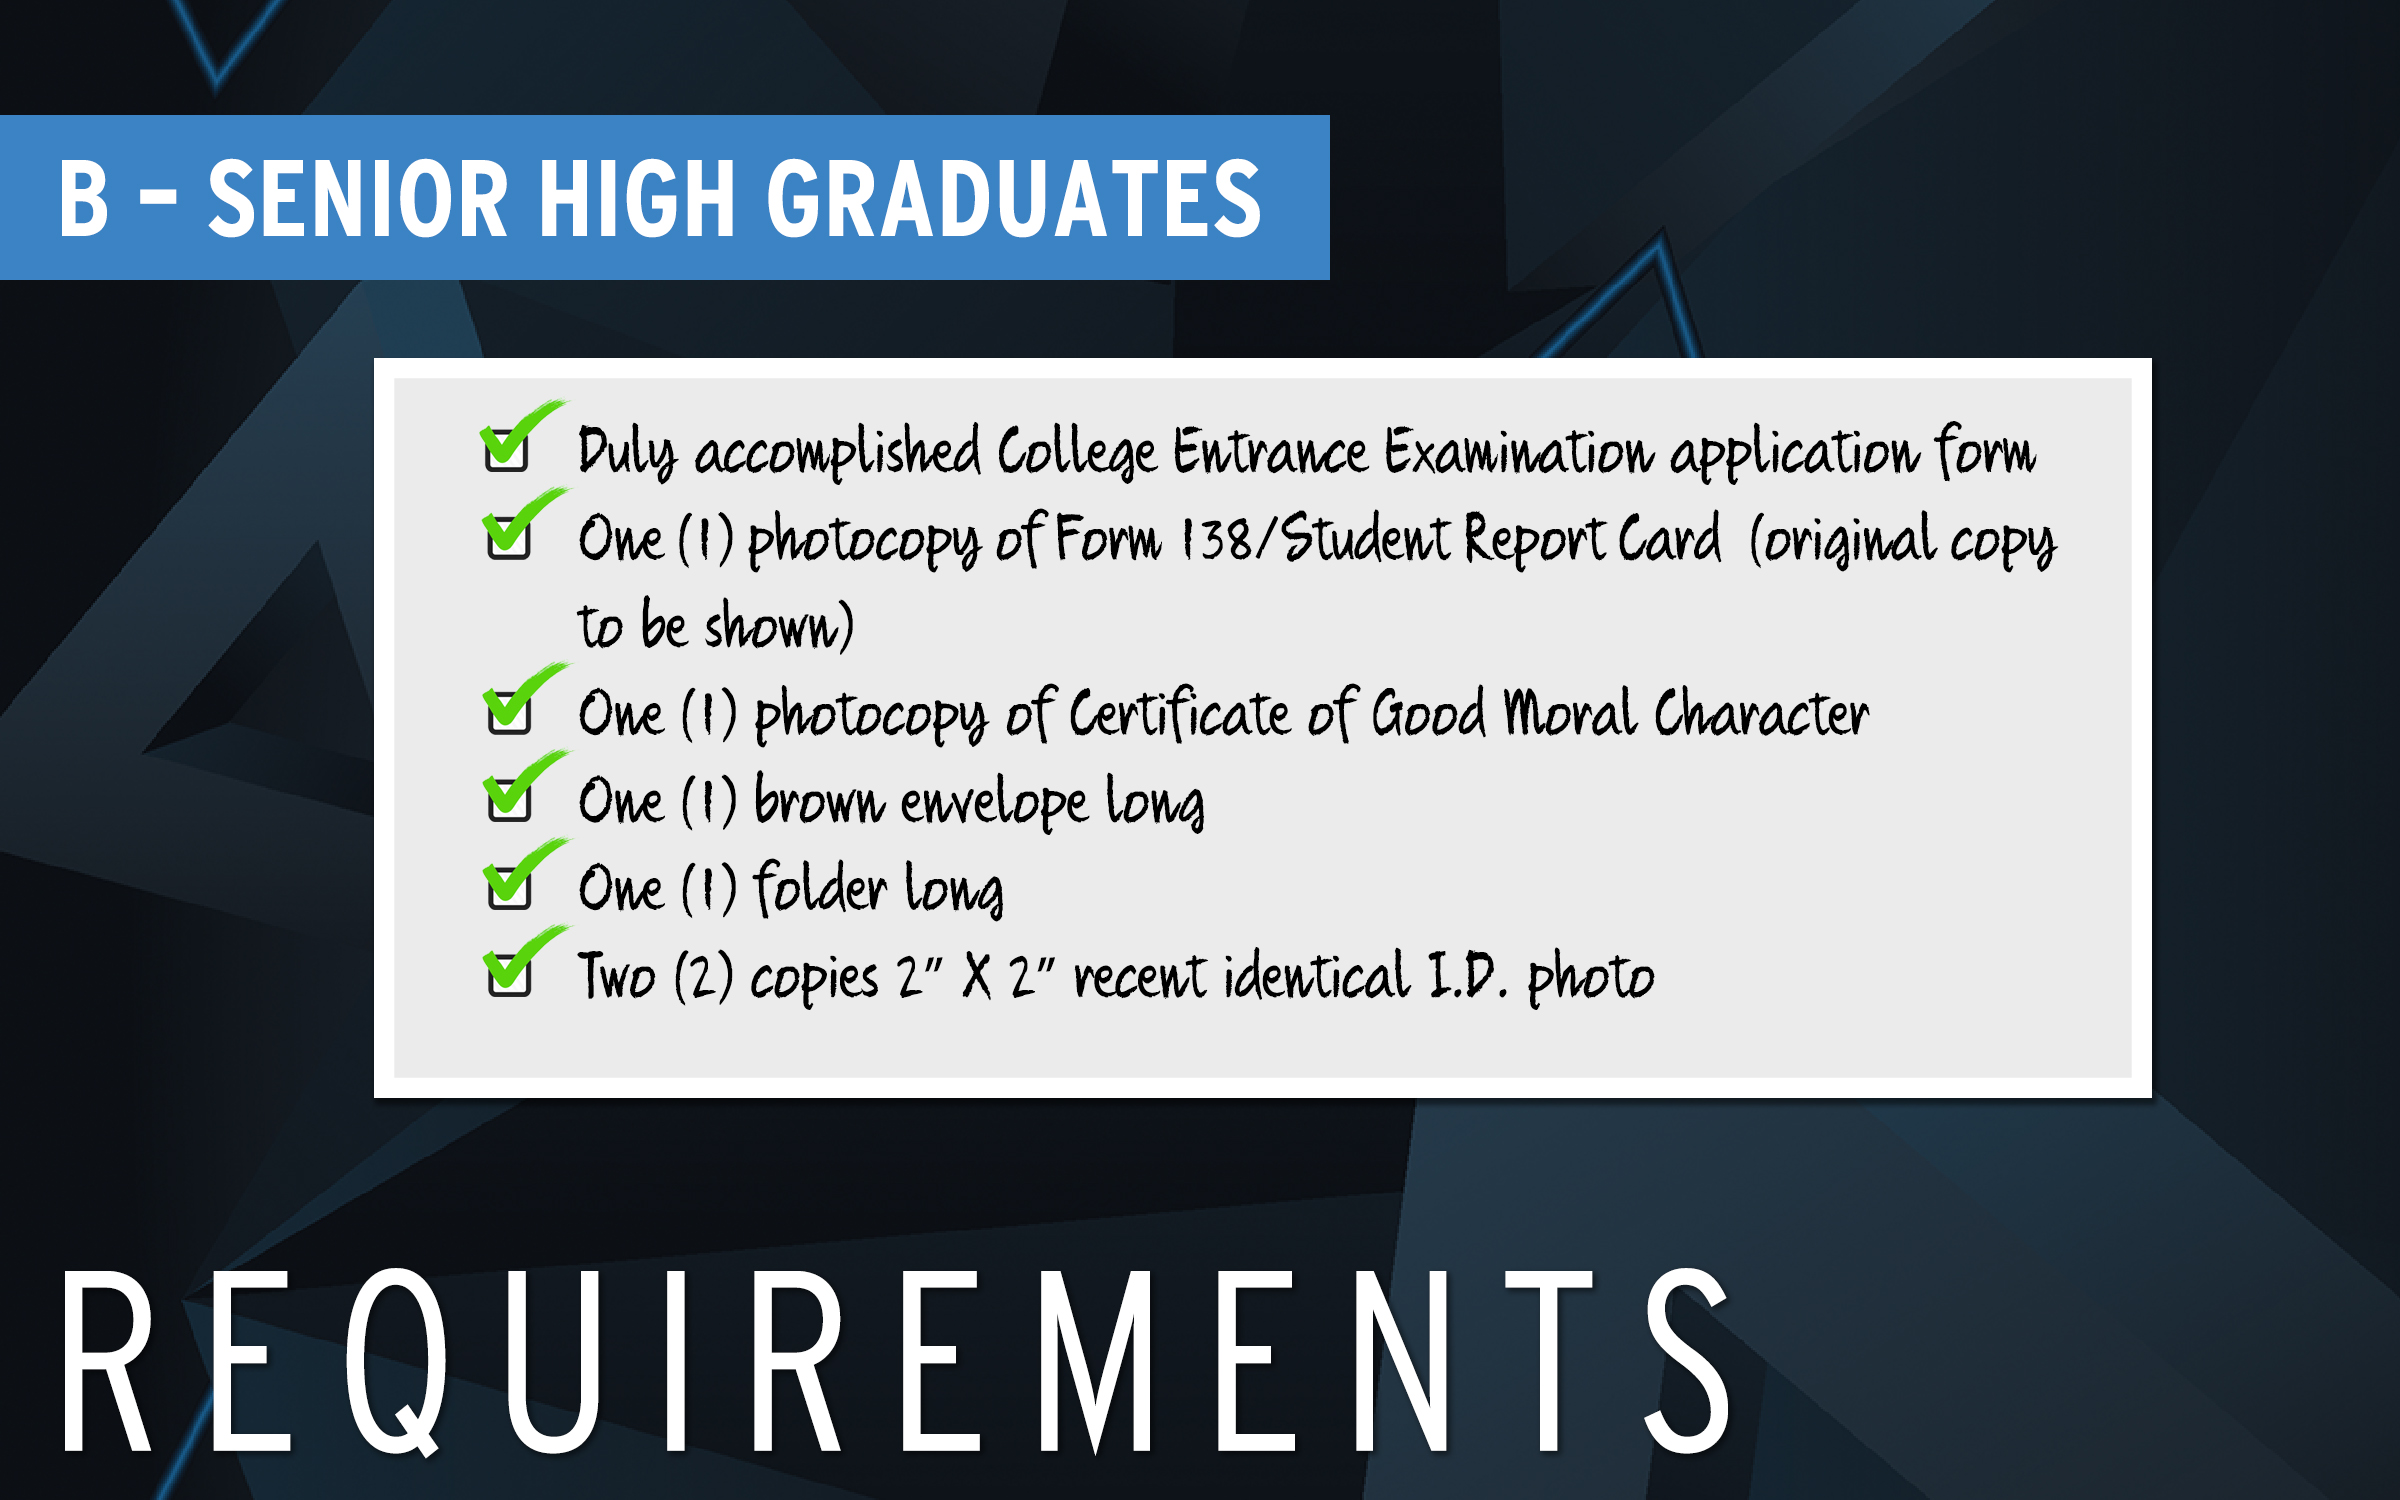 REQUIREMENTS-B